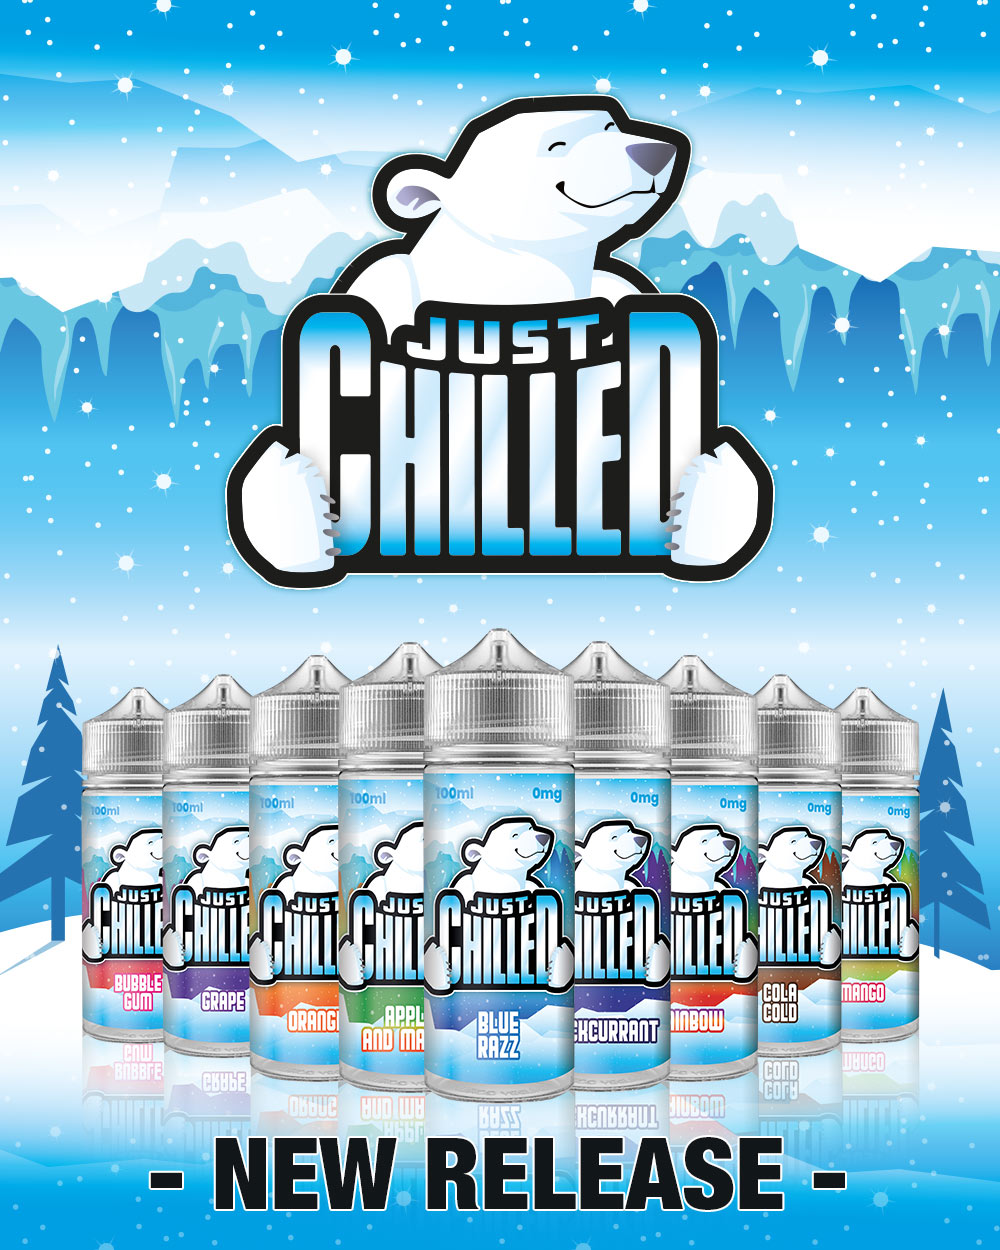 Just Chilled Promotional Image